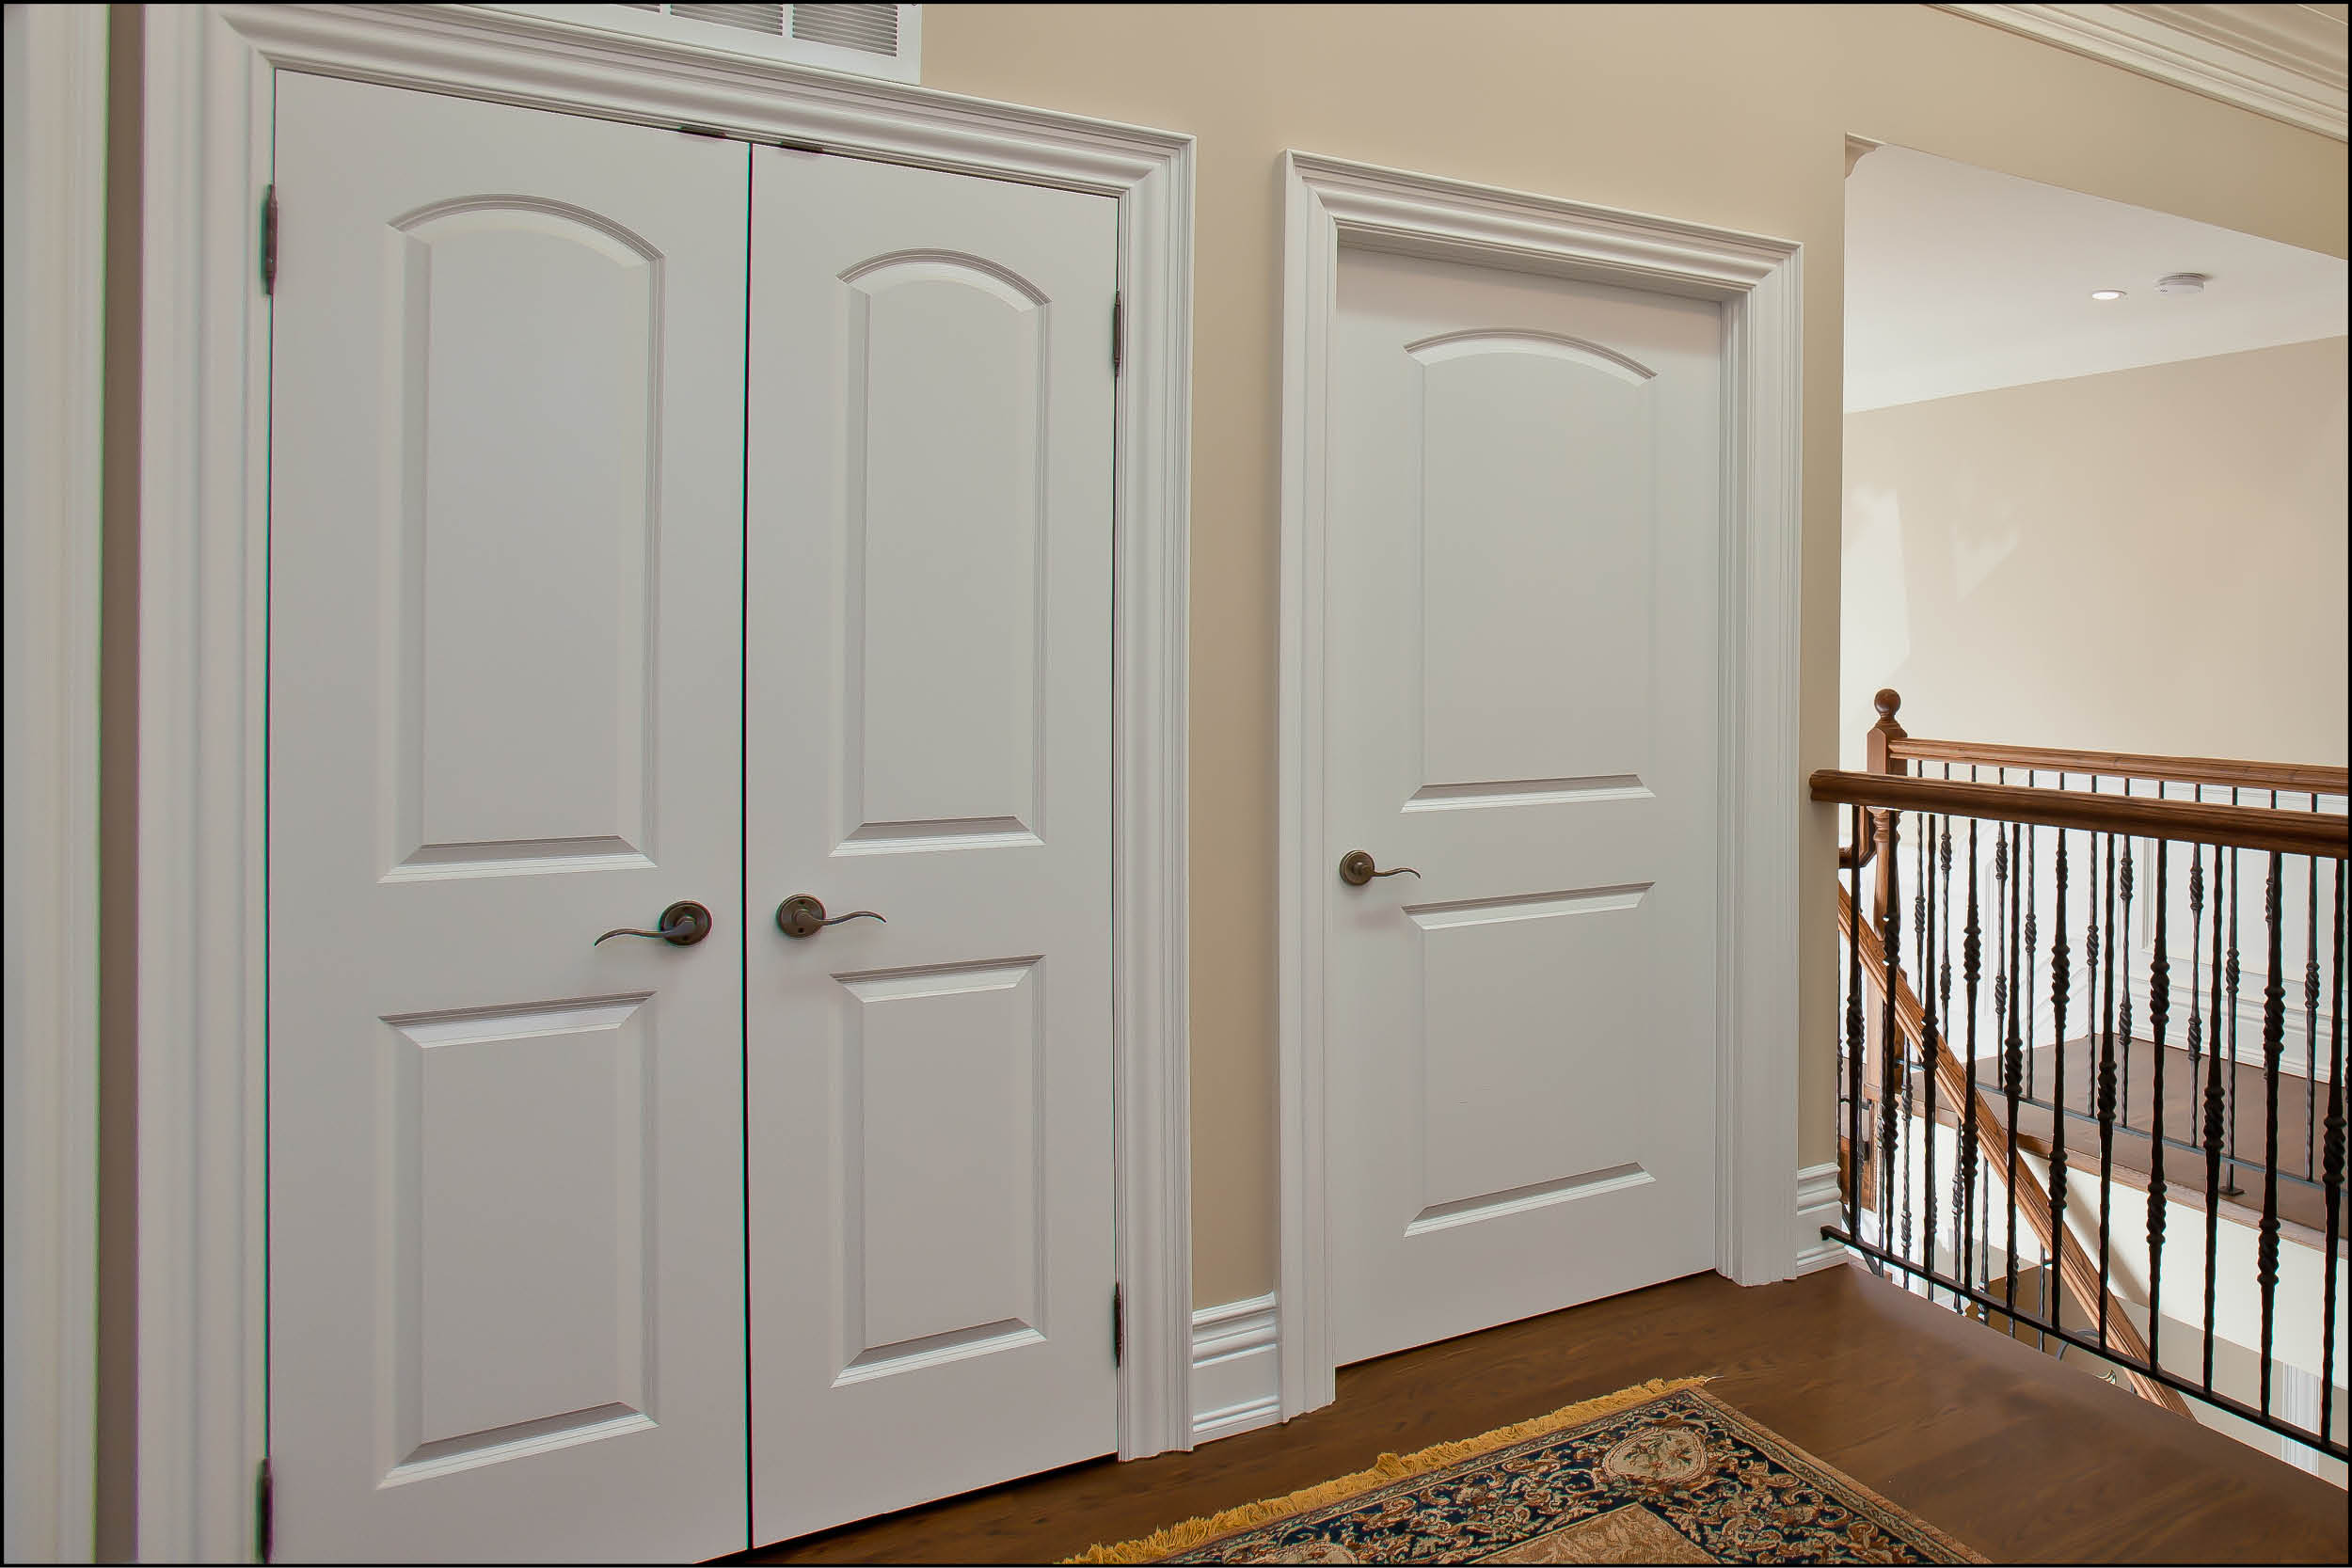 Interior doors fondare finish construction for Interior entrance doors